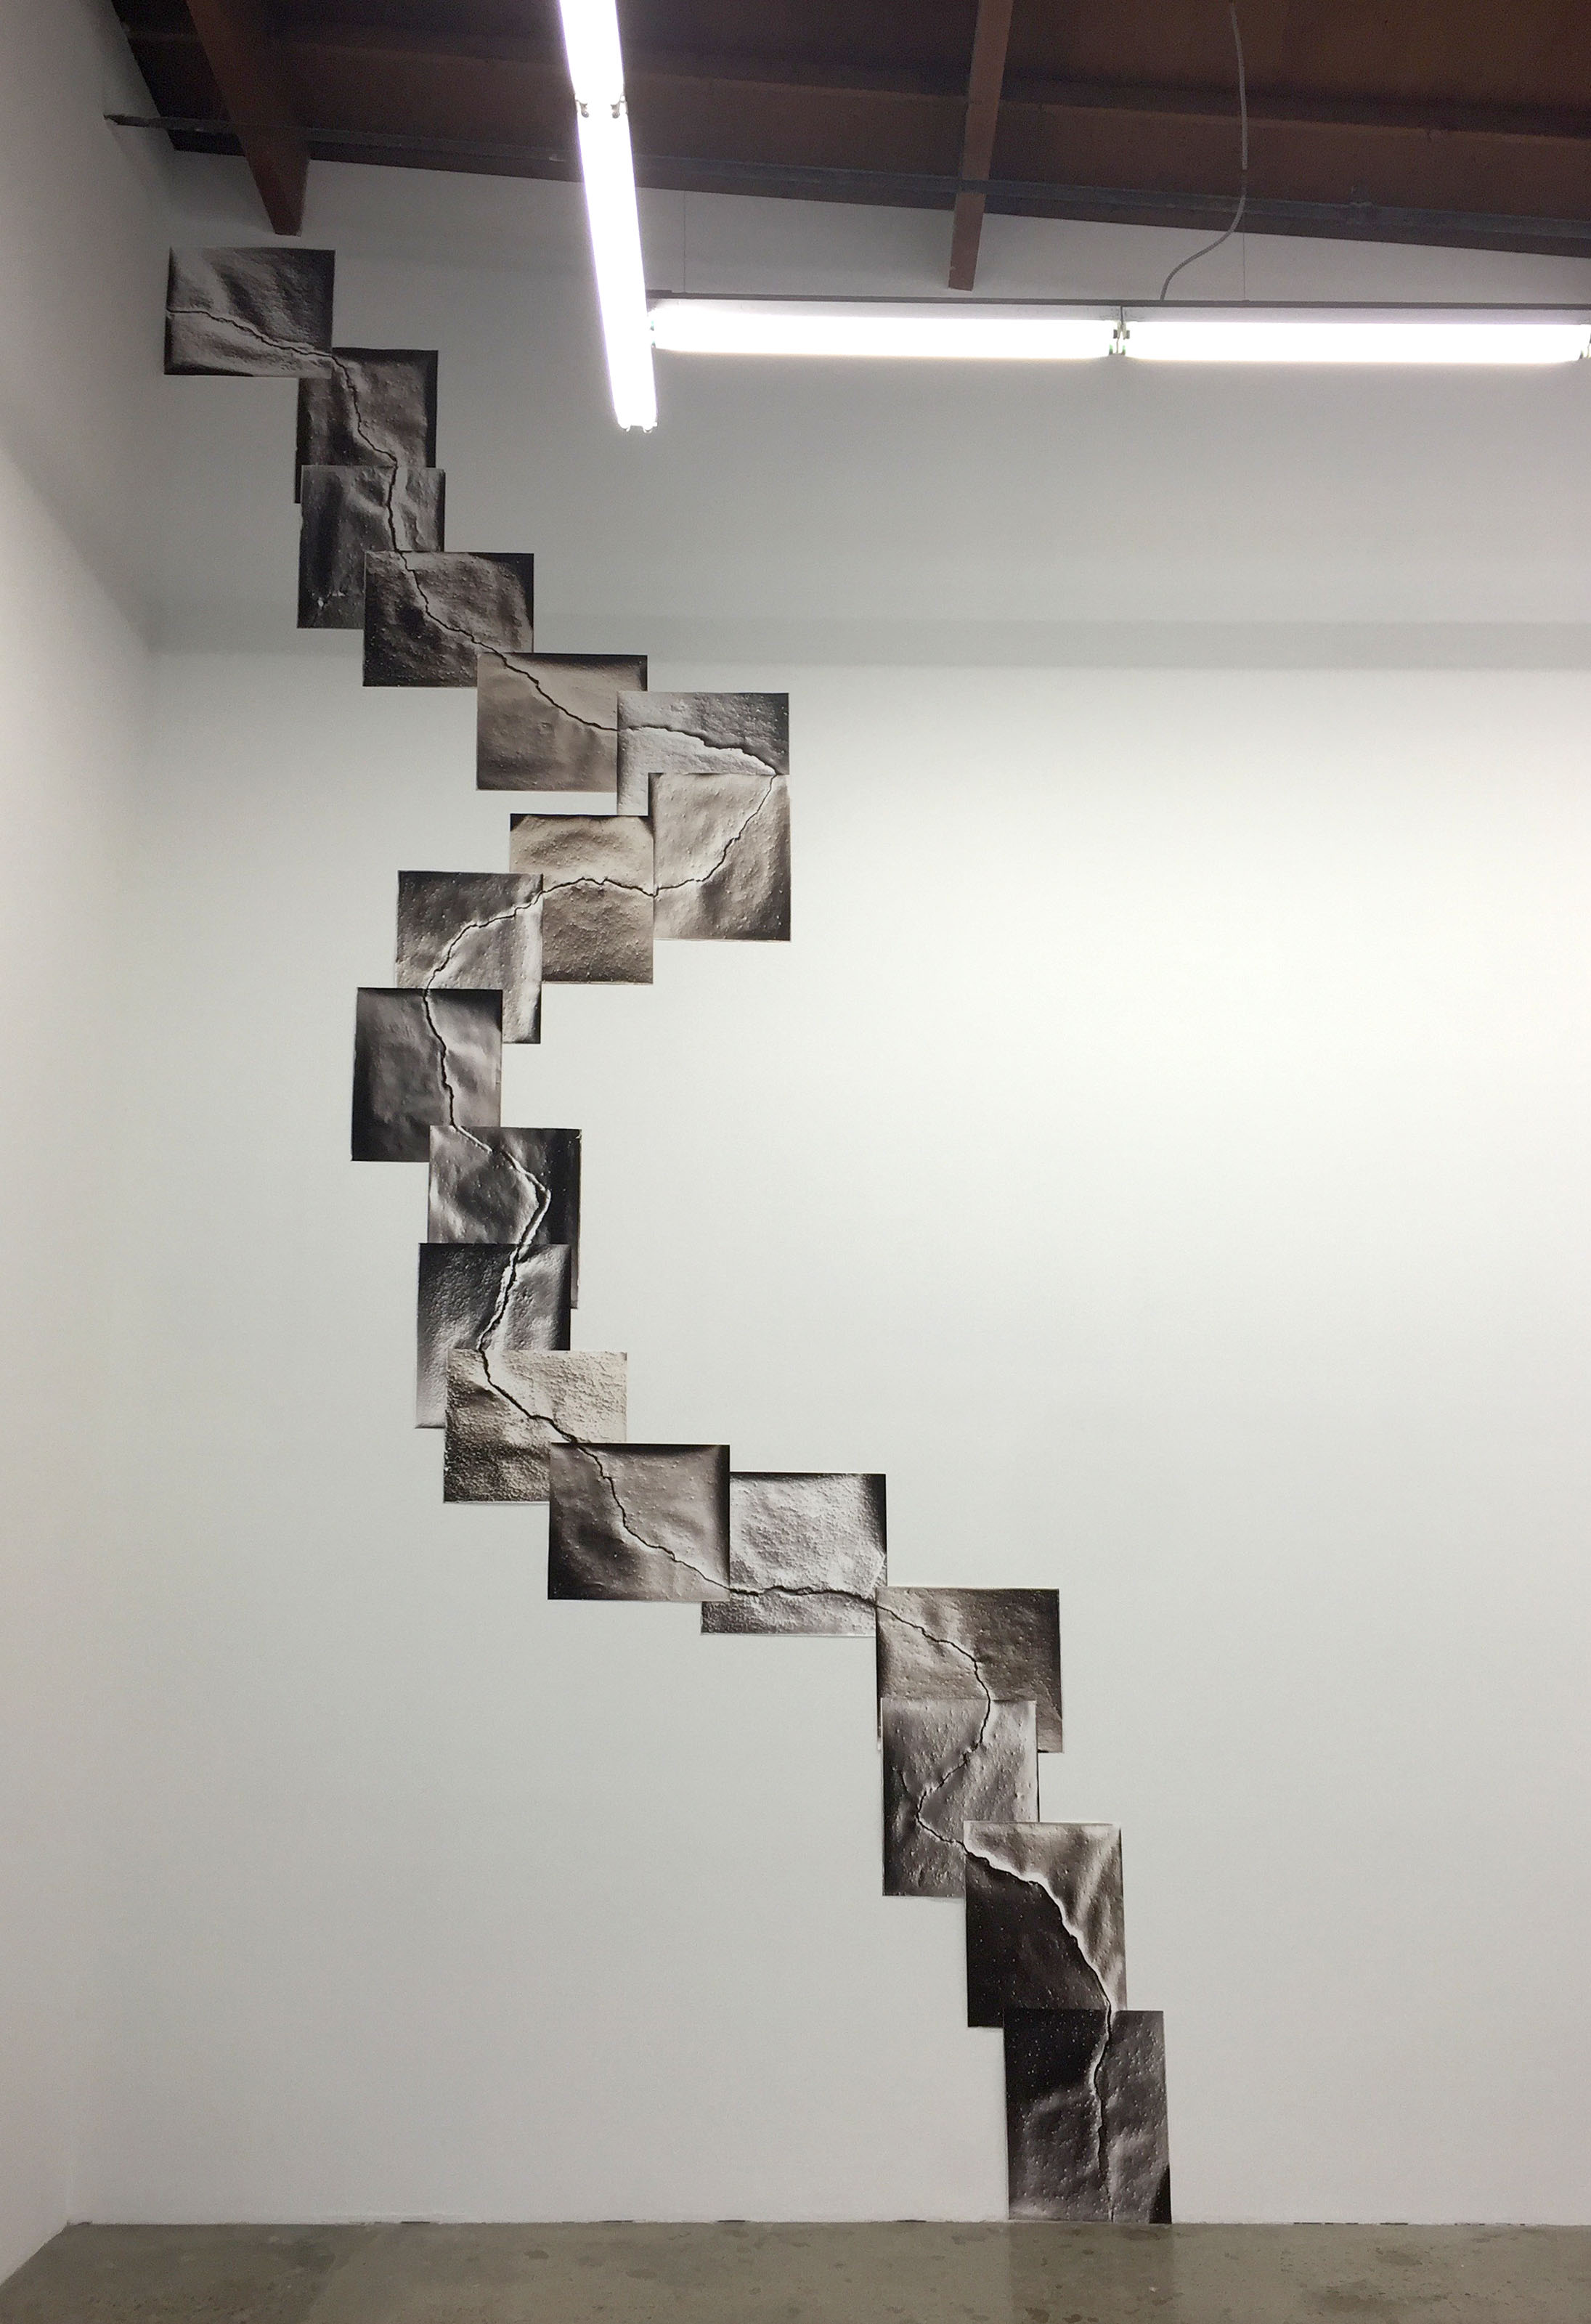 KLEA MCKENNA My Fault, 2016 Installation of 19 photographic rubbings. Unique gelatin silver photograms, split toned with sepia/selenium. 22ft x 12ft